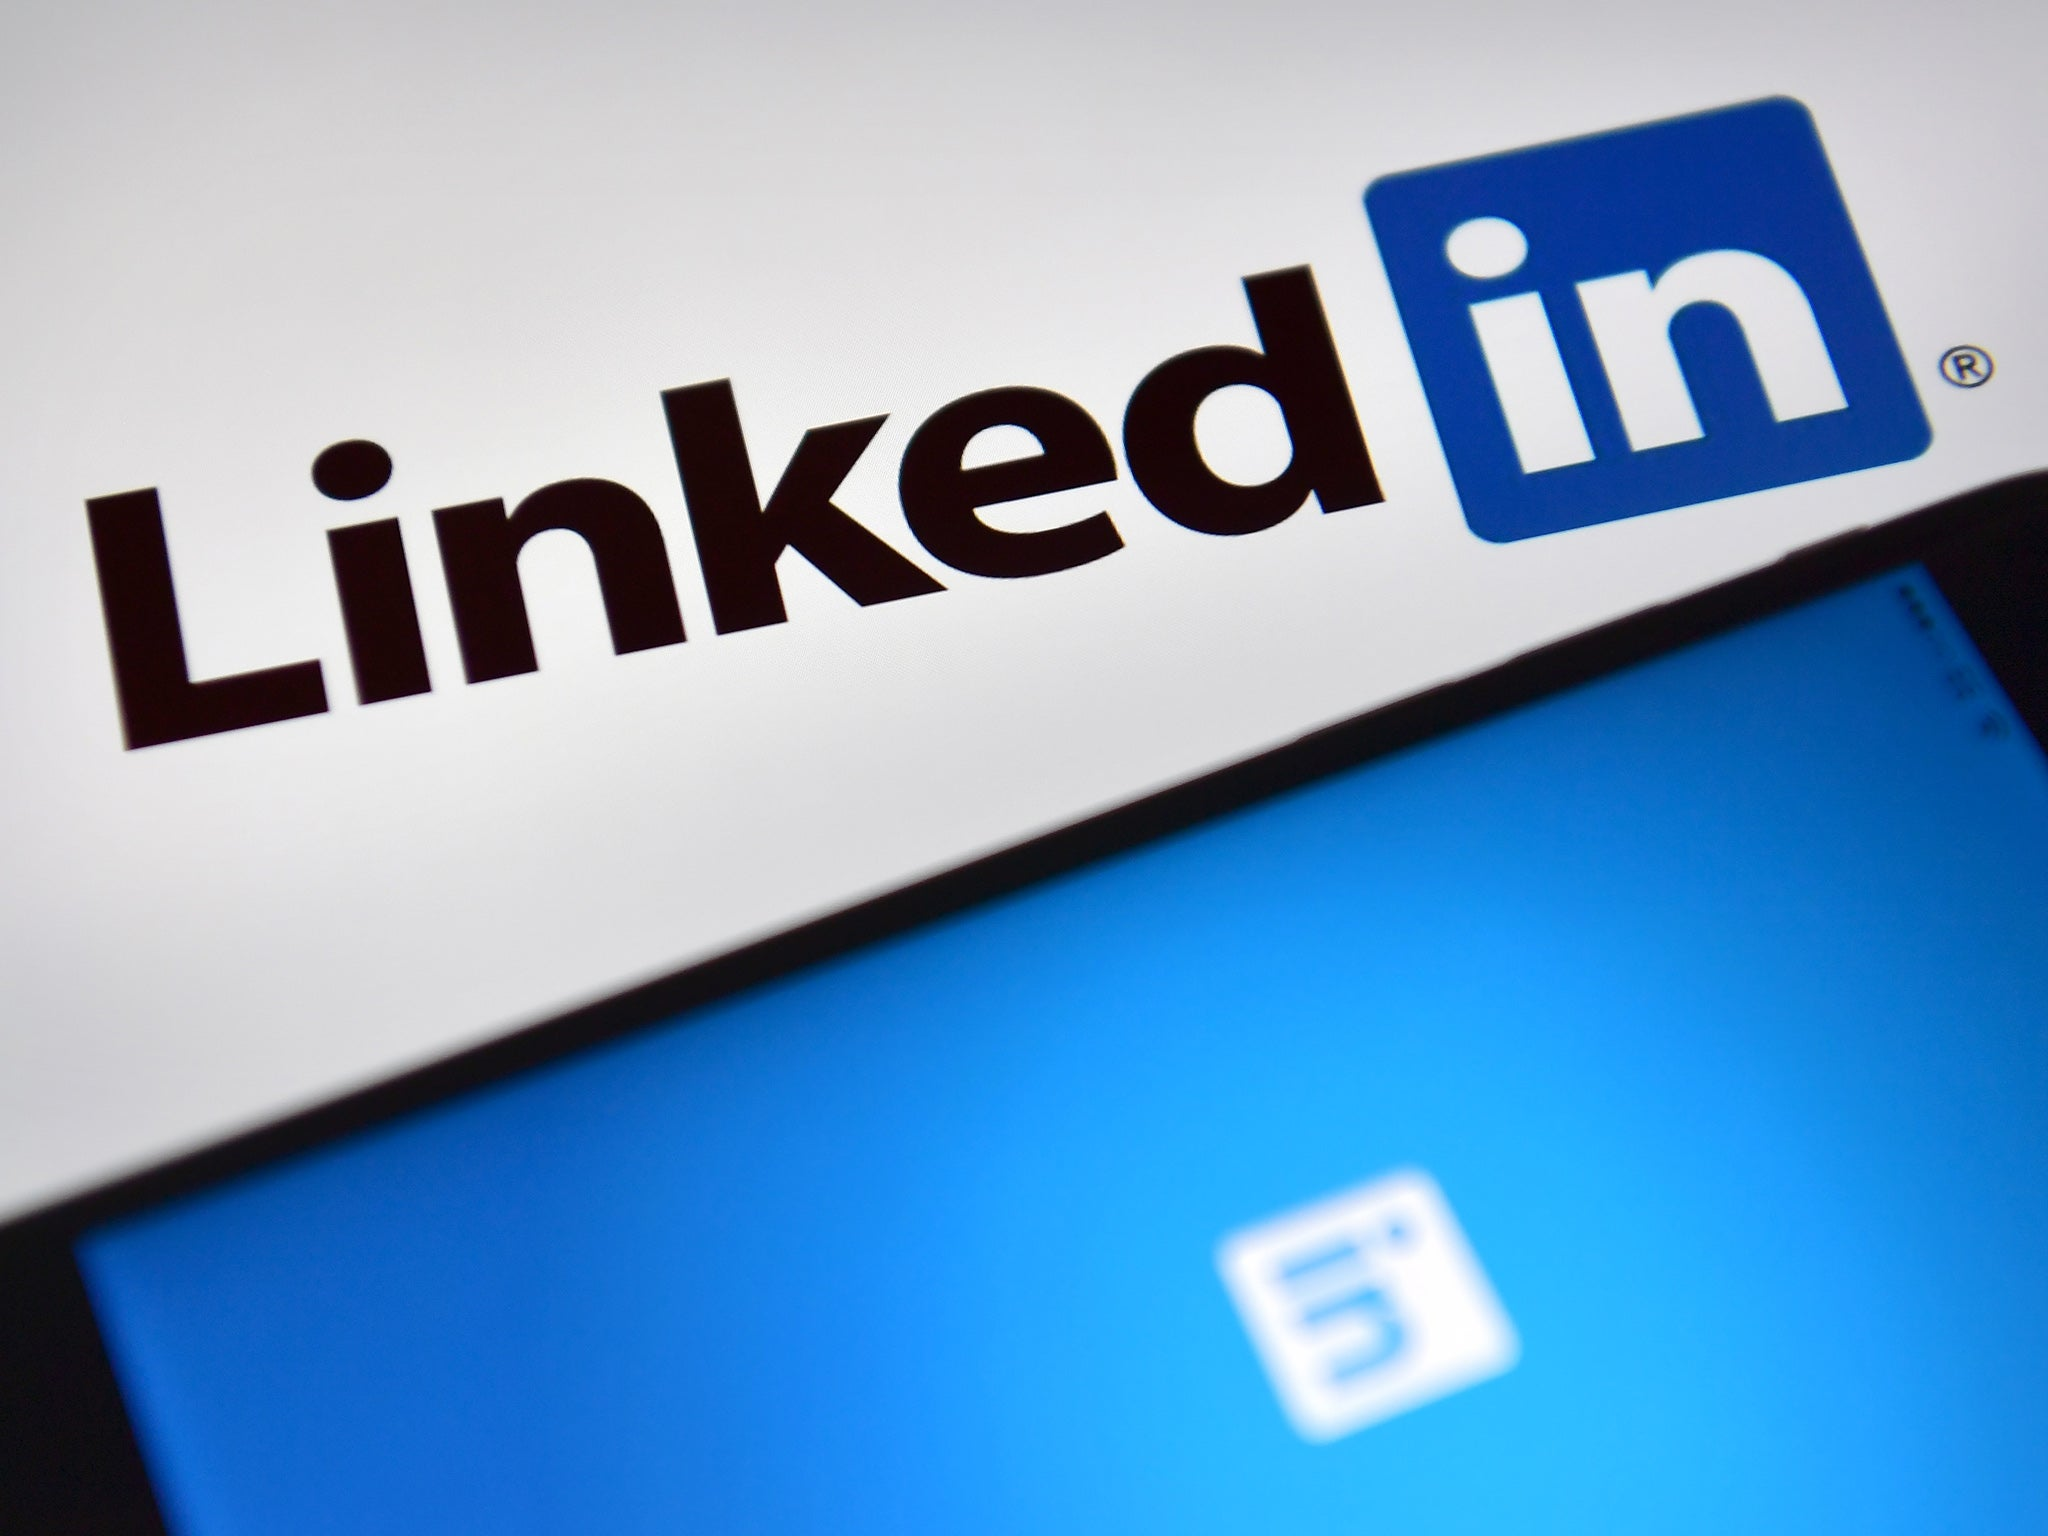 LinkedIn denies claims that editing feature whitens user profile photos